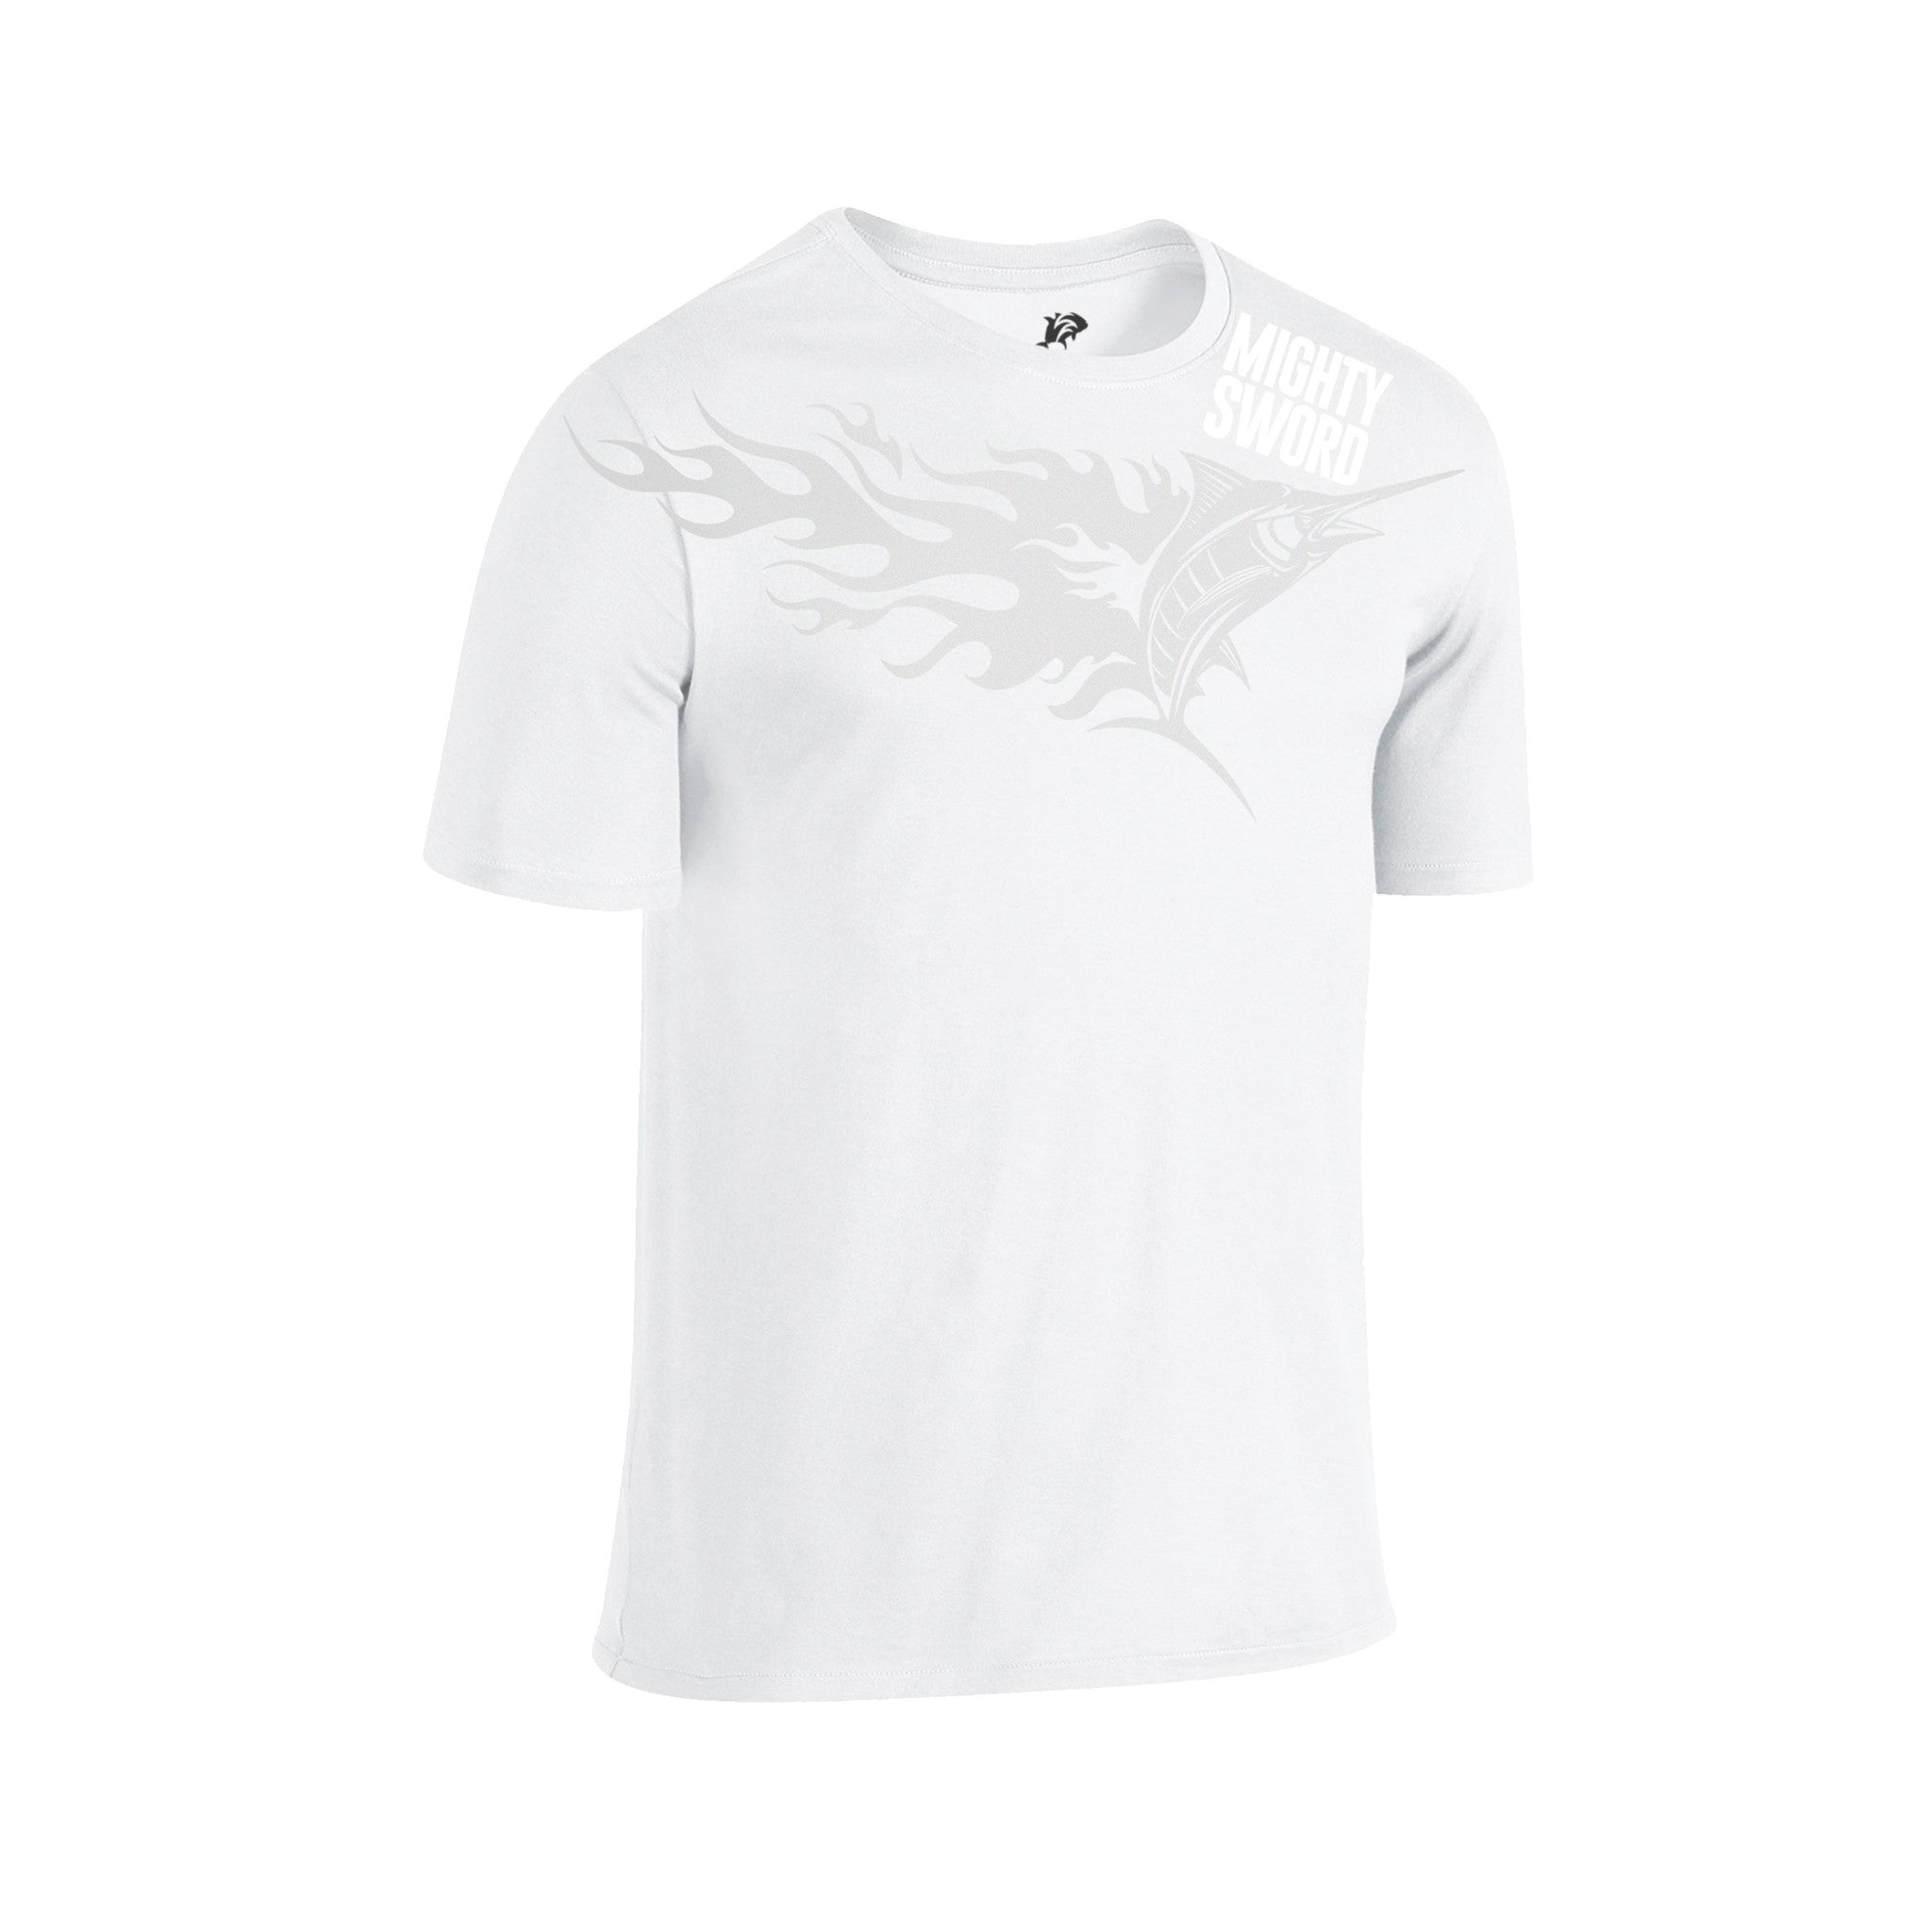 SportyFish Fury Series White T-shirt(front view): Black Marlin